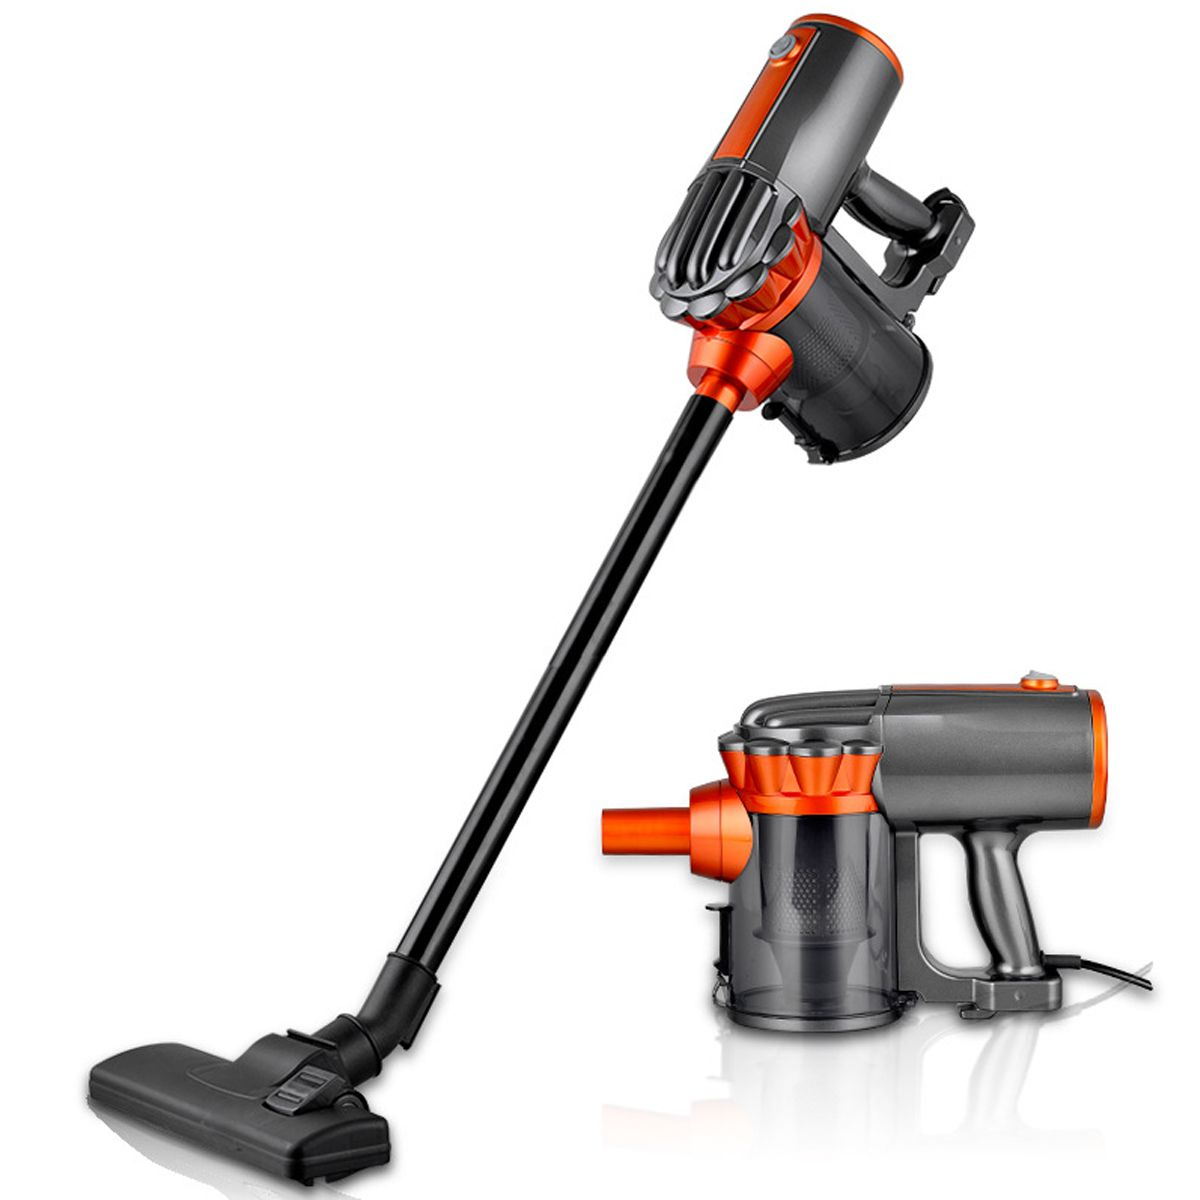 600W 220V Household Vacuum Cleaner Portable Low Noise Vacuum Cleaner Handheld Dust Collector Aspirator Vacum Cleaner